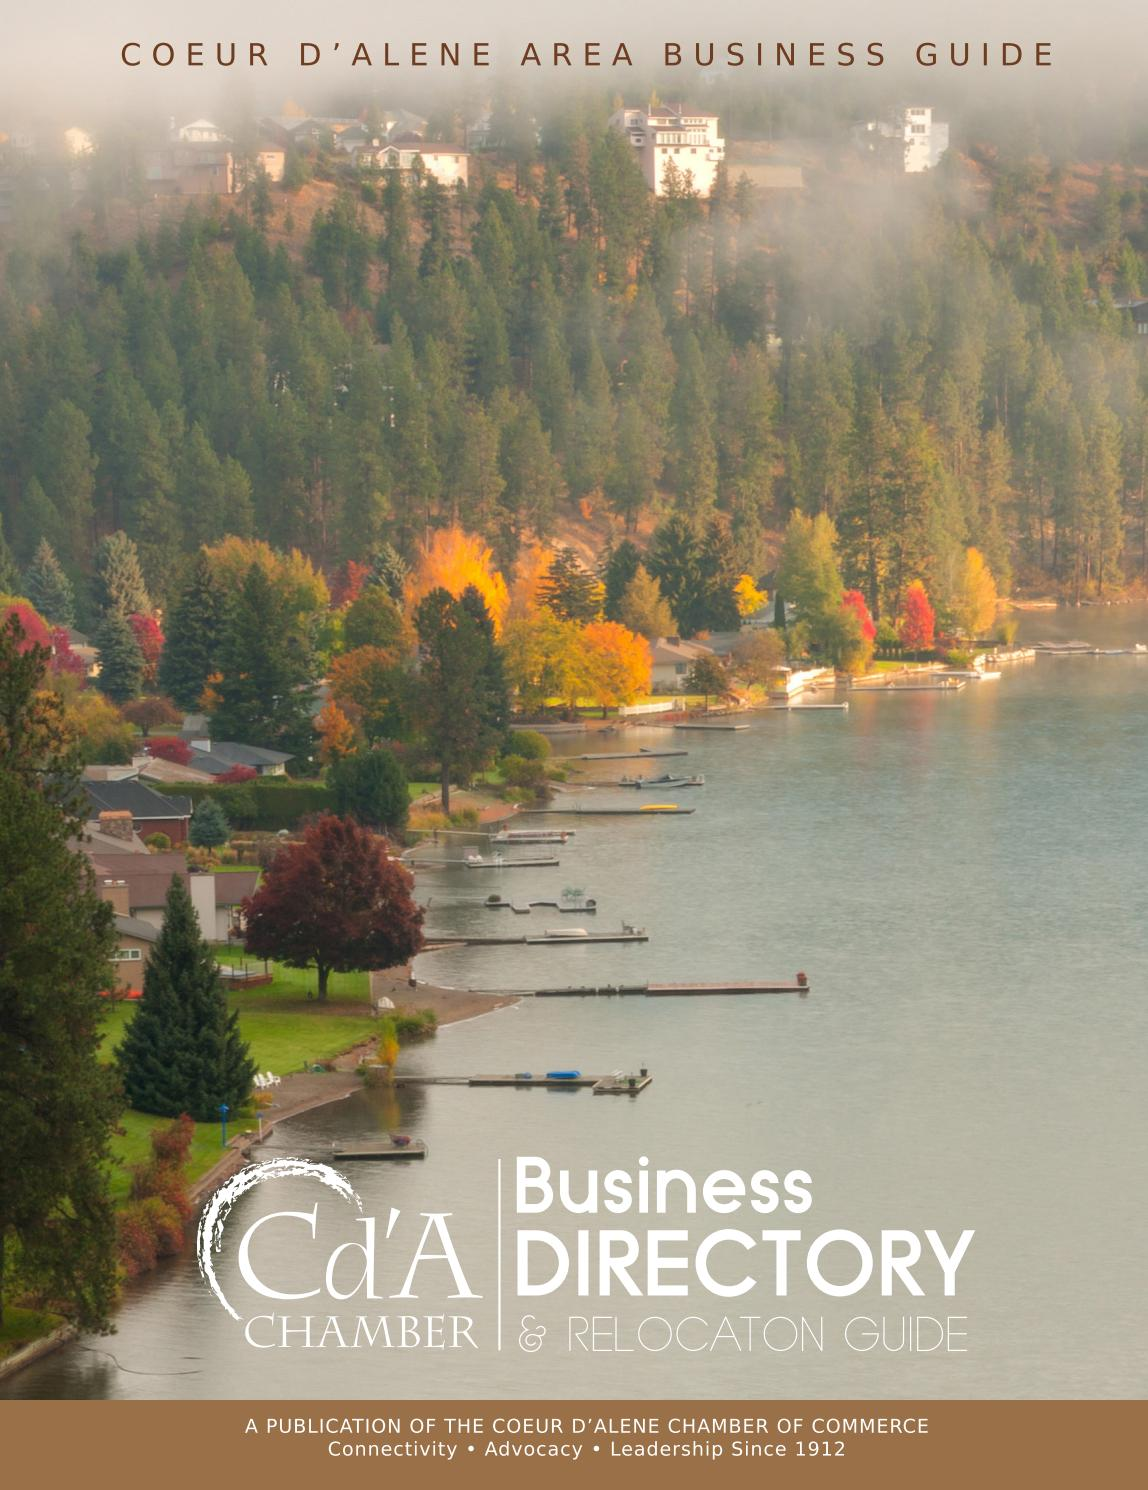 Coeur d'Alene Chamber of Commerce 2017 Business Directory ...